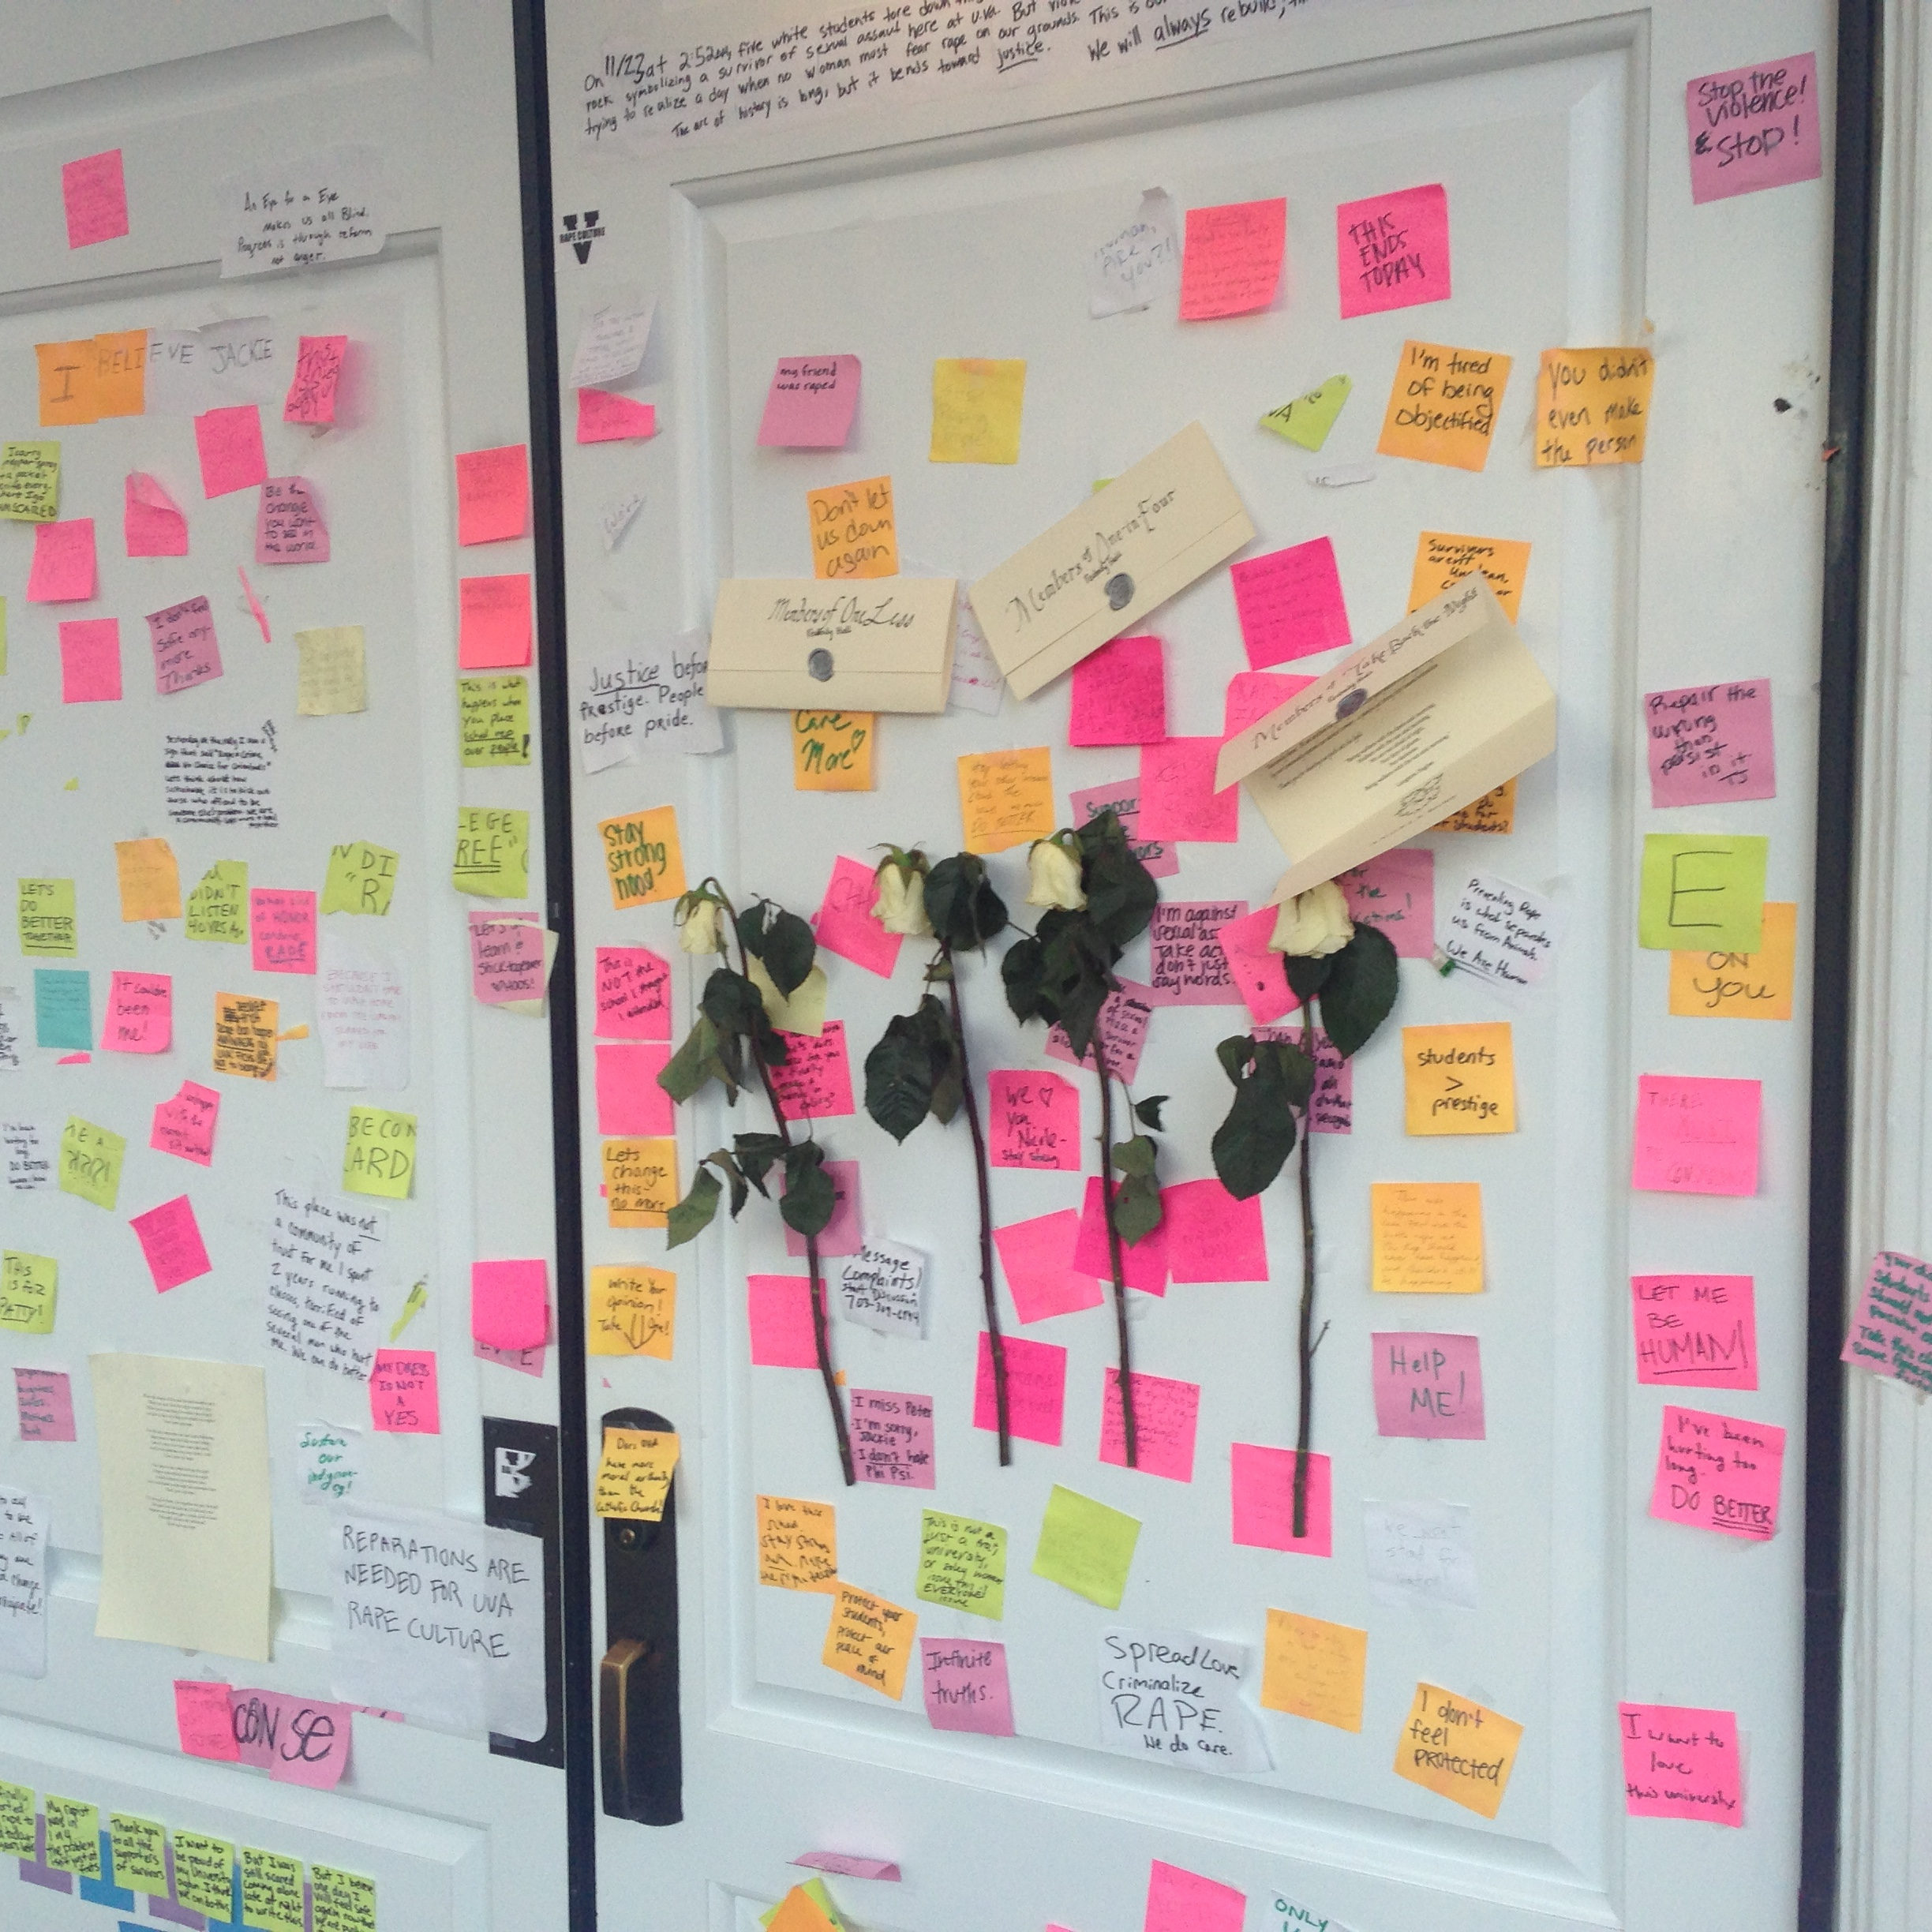 Display of Notes on the doors of Peabody Hall, 10 December 2014. (Photograph taken by Edward Gaynor.).